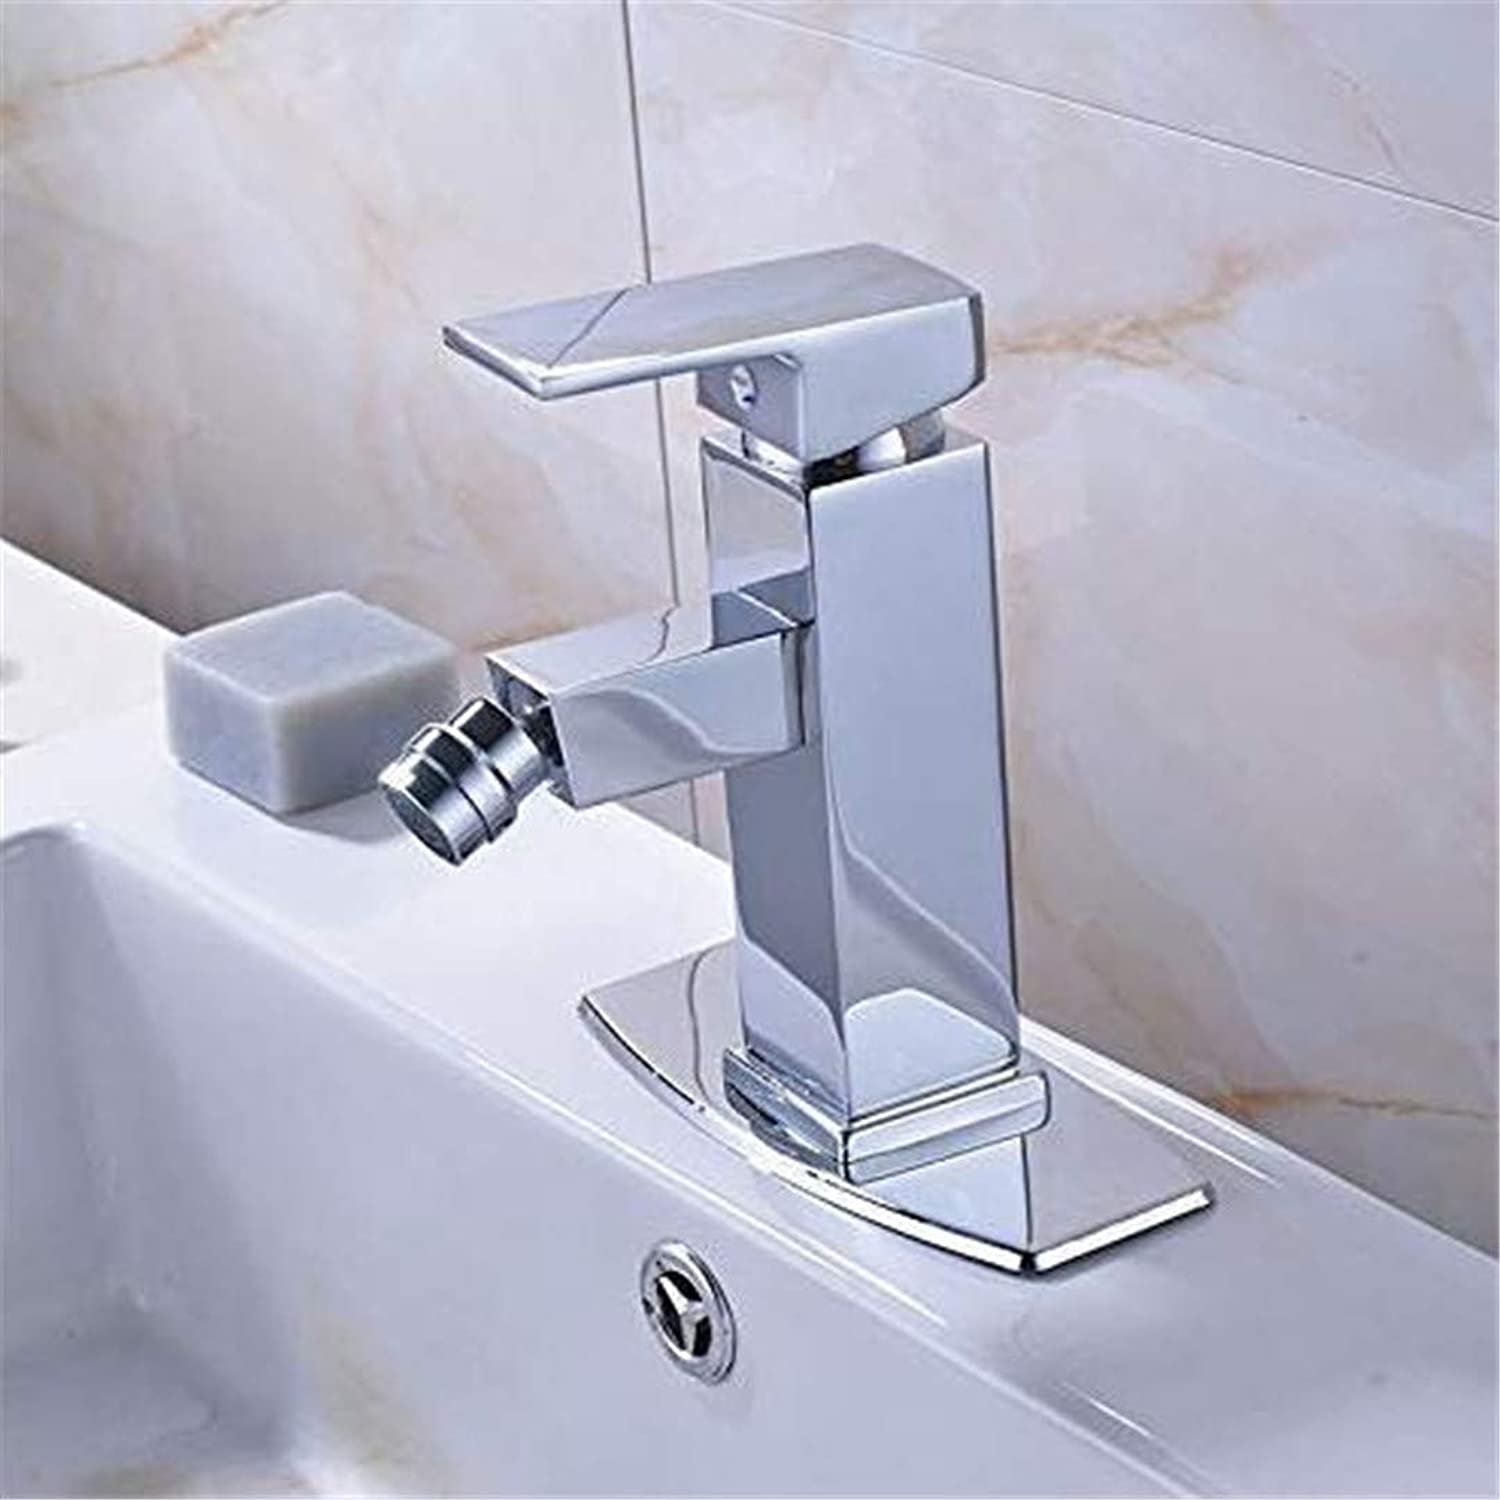 Faucet Basin Faucet Kitchen Faucetbathroom Sink Tapdeck Mounted Bathroom Woman Bidet Faucet Single Lever Hot and Cold redate Lavatory Sink Mixer Tap Bright Chrome